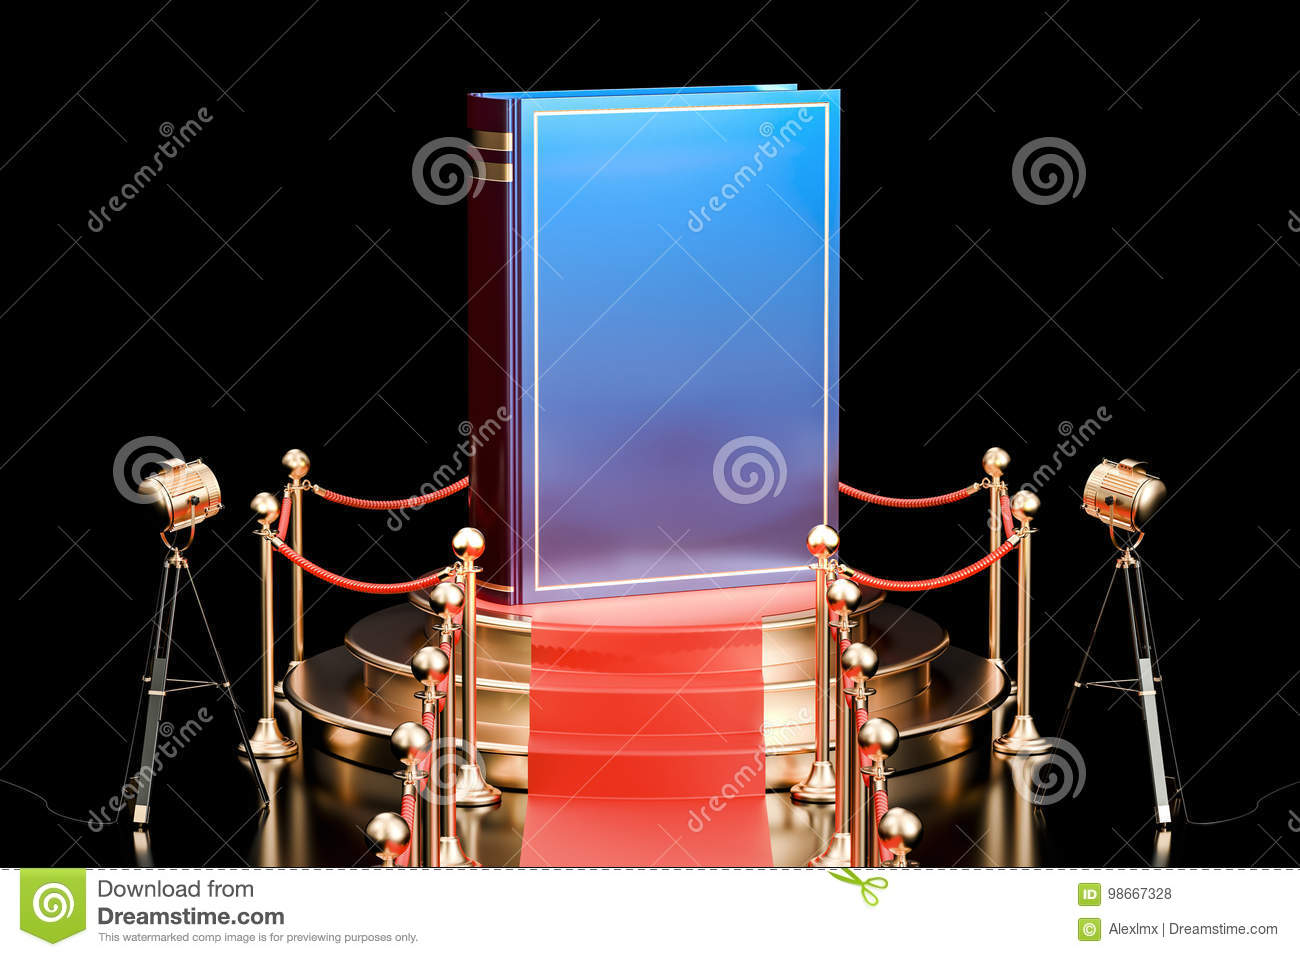 Book on podium, presentation of new book concept. 3D rendering